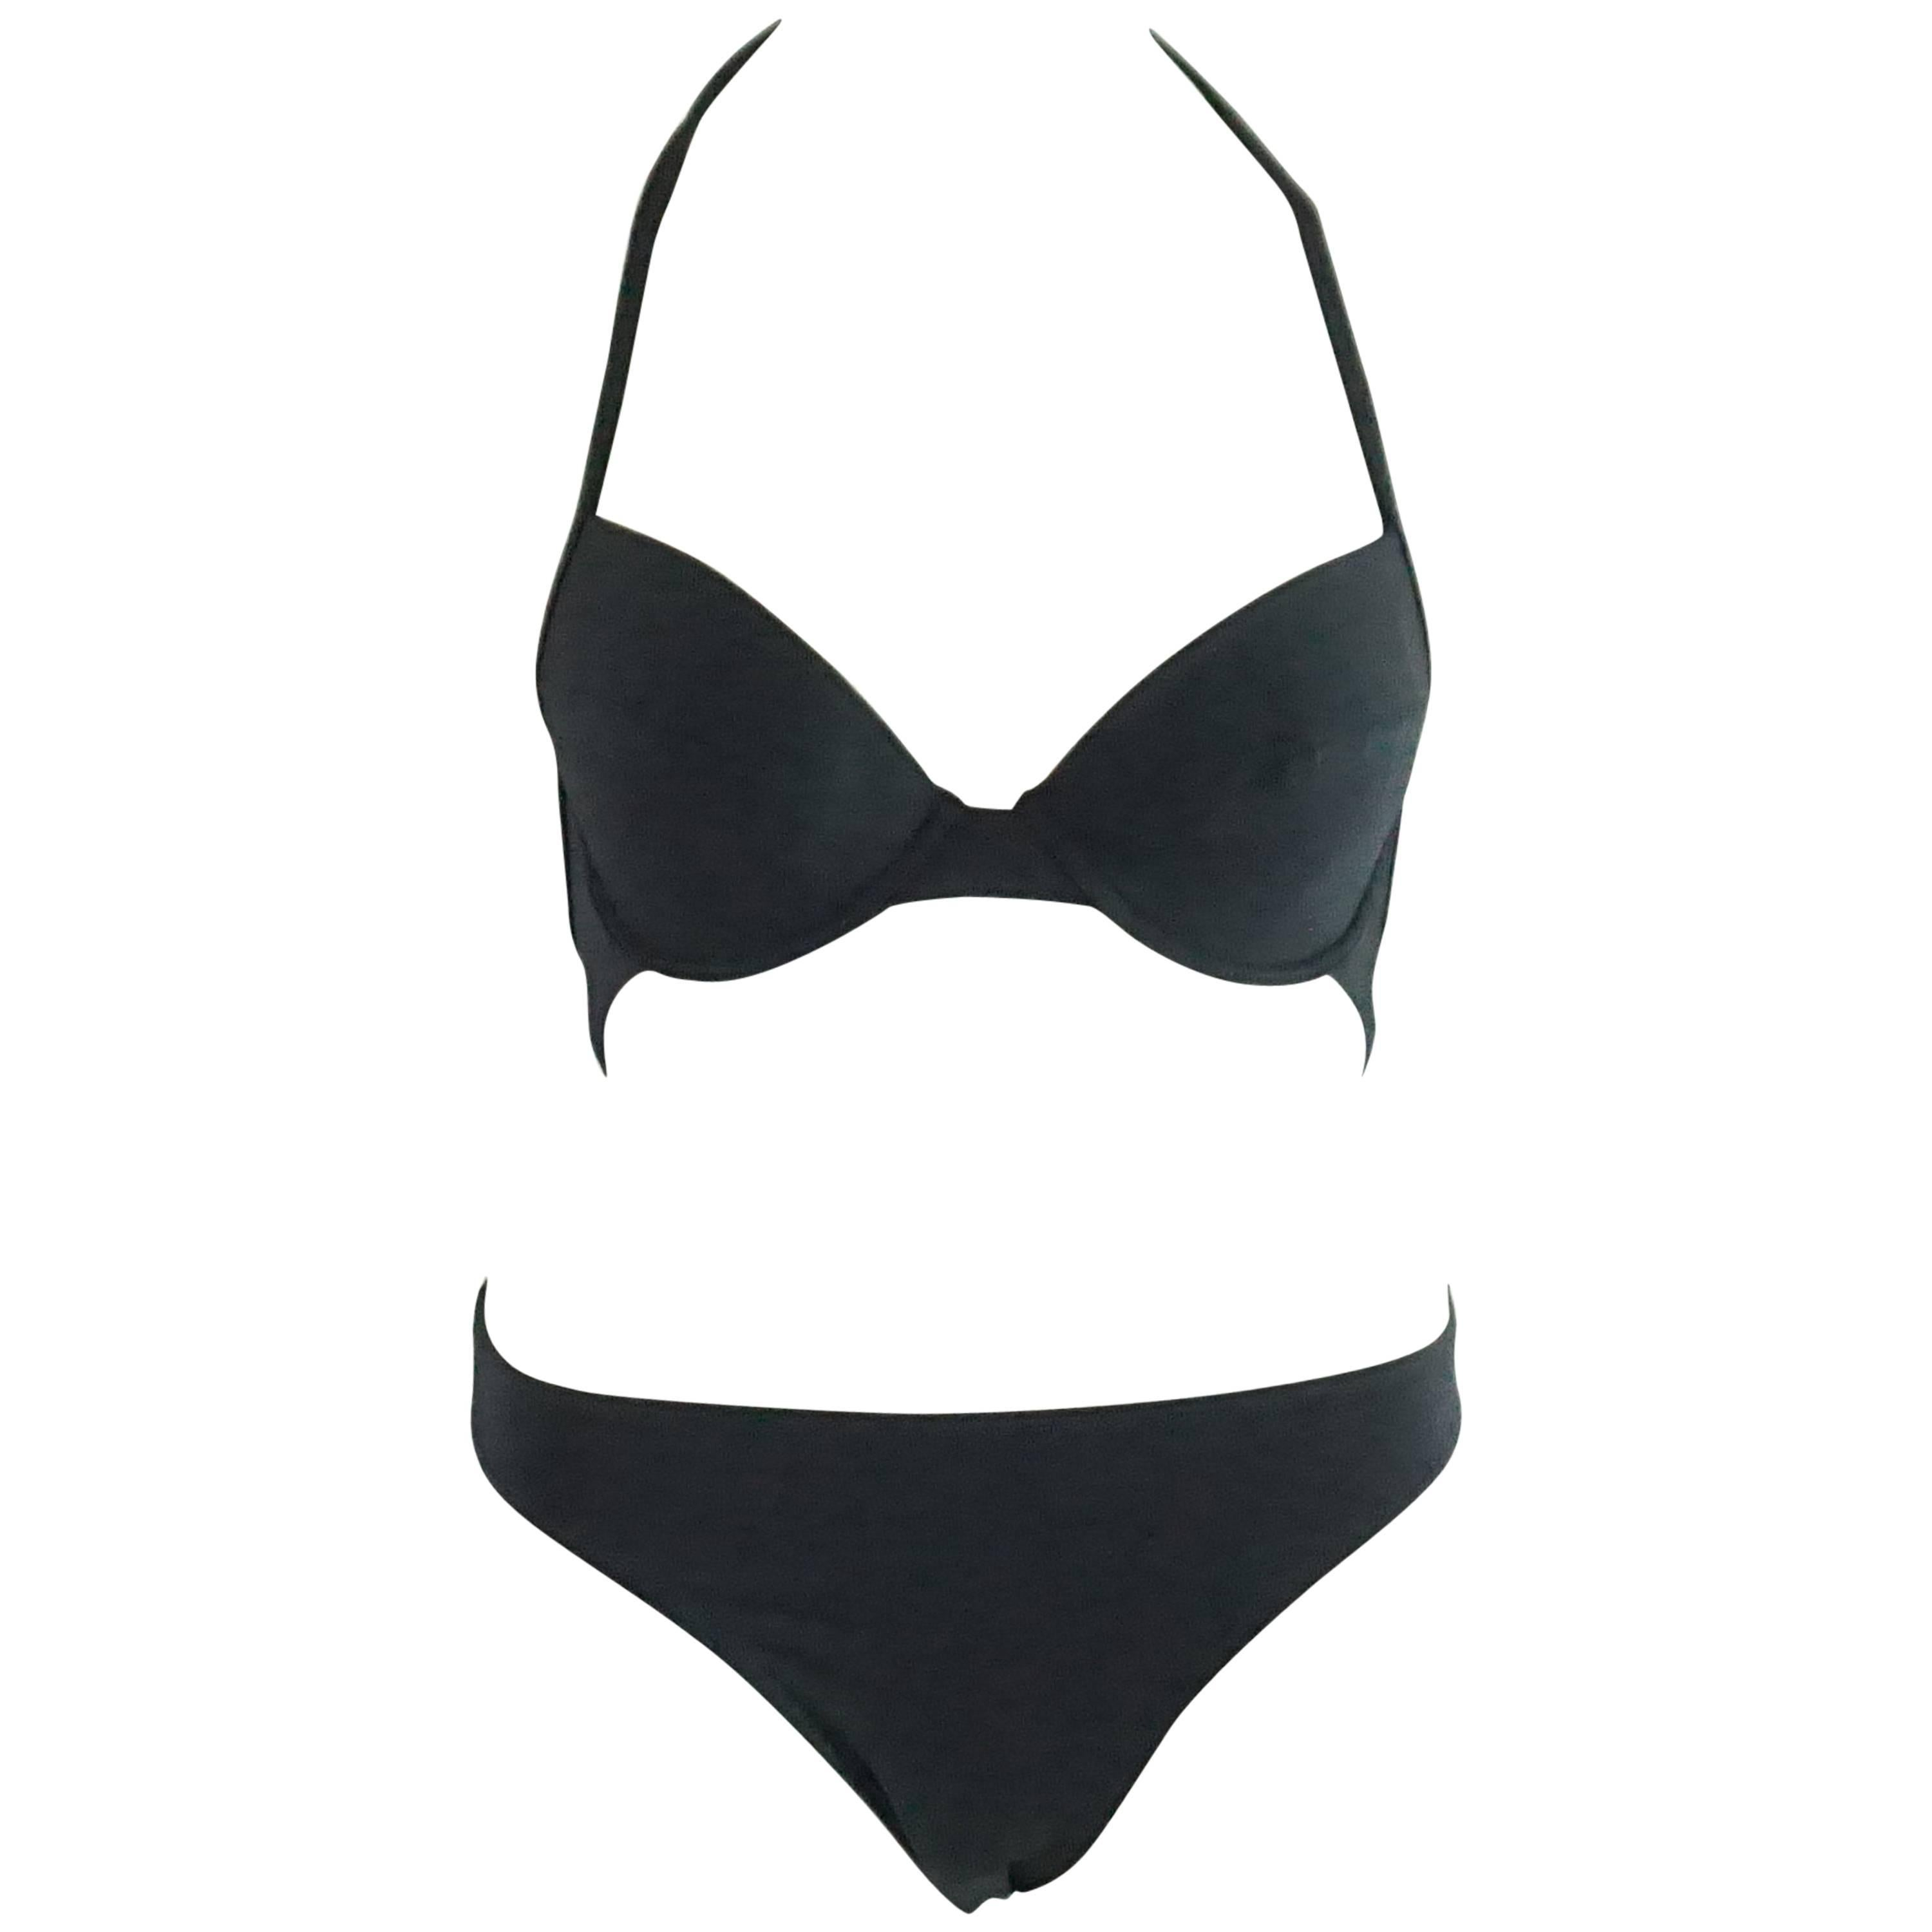 f1751c9788659 21st Century and Contemporary Swimwear - 91 For Sale at 1stdibs - Page 2